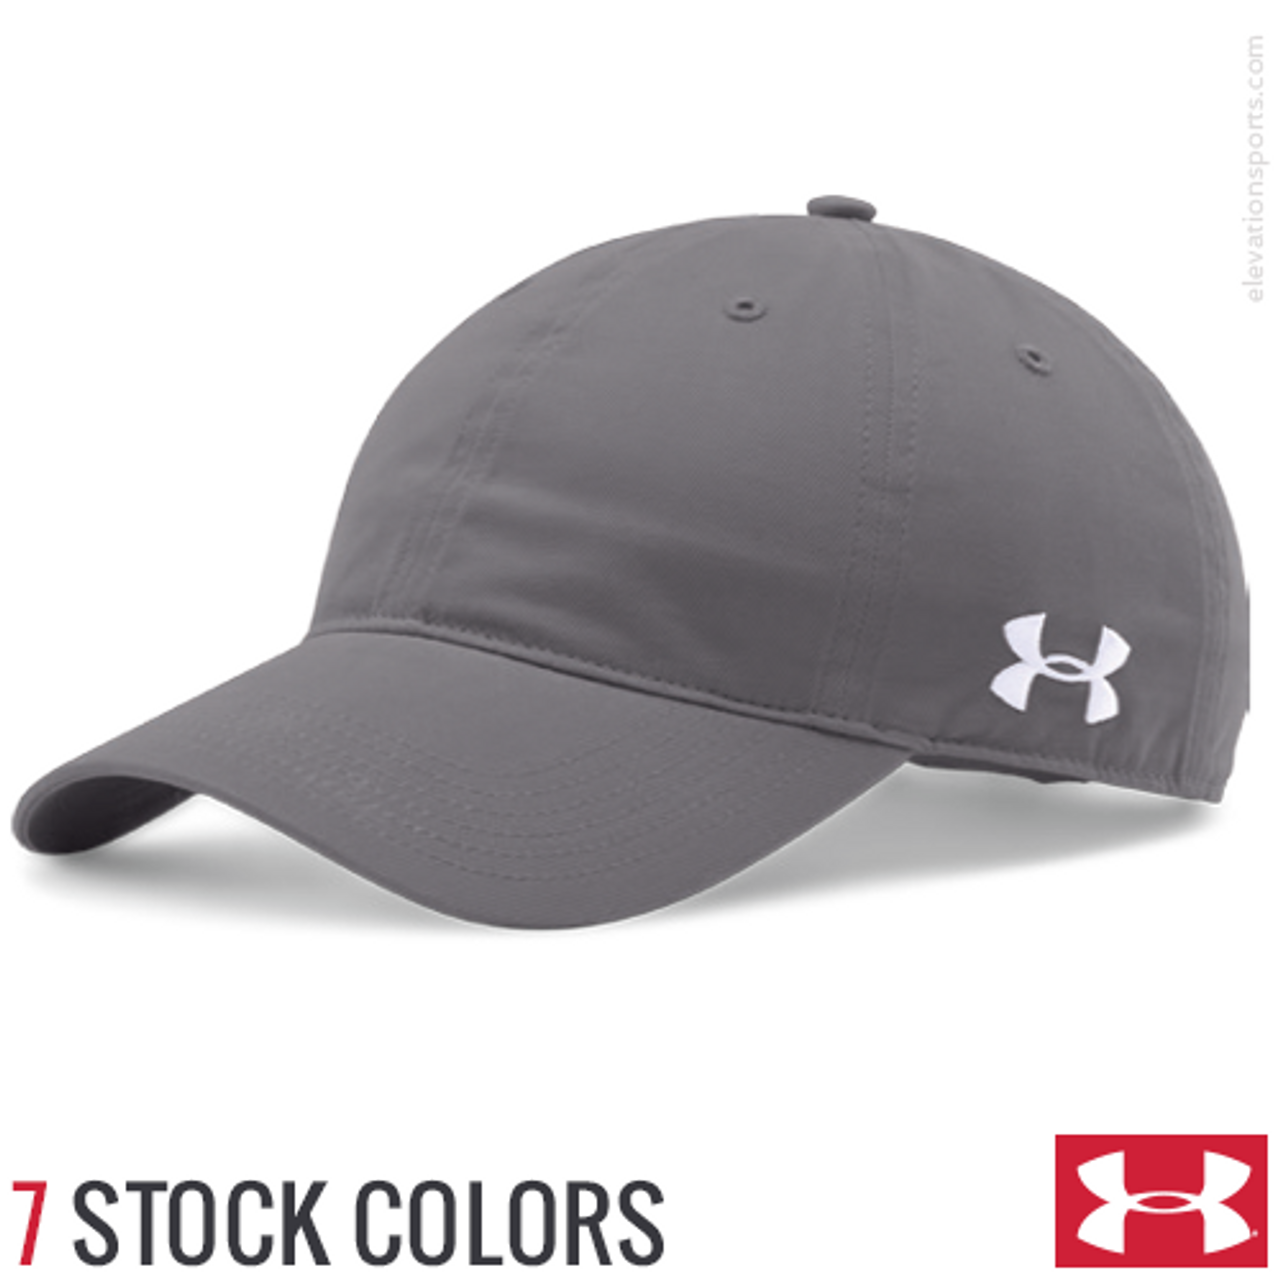 milla nautica molécula Individualidad  Under Armour Custom Hats with Relaxed Fit - Elevation Sports